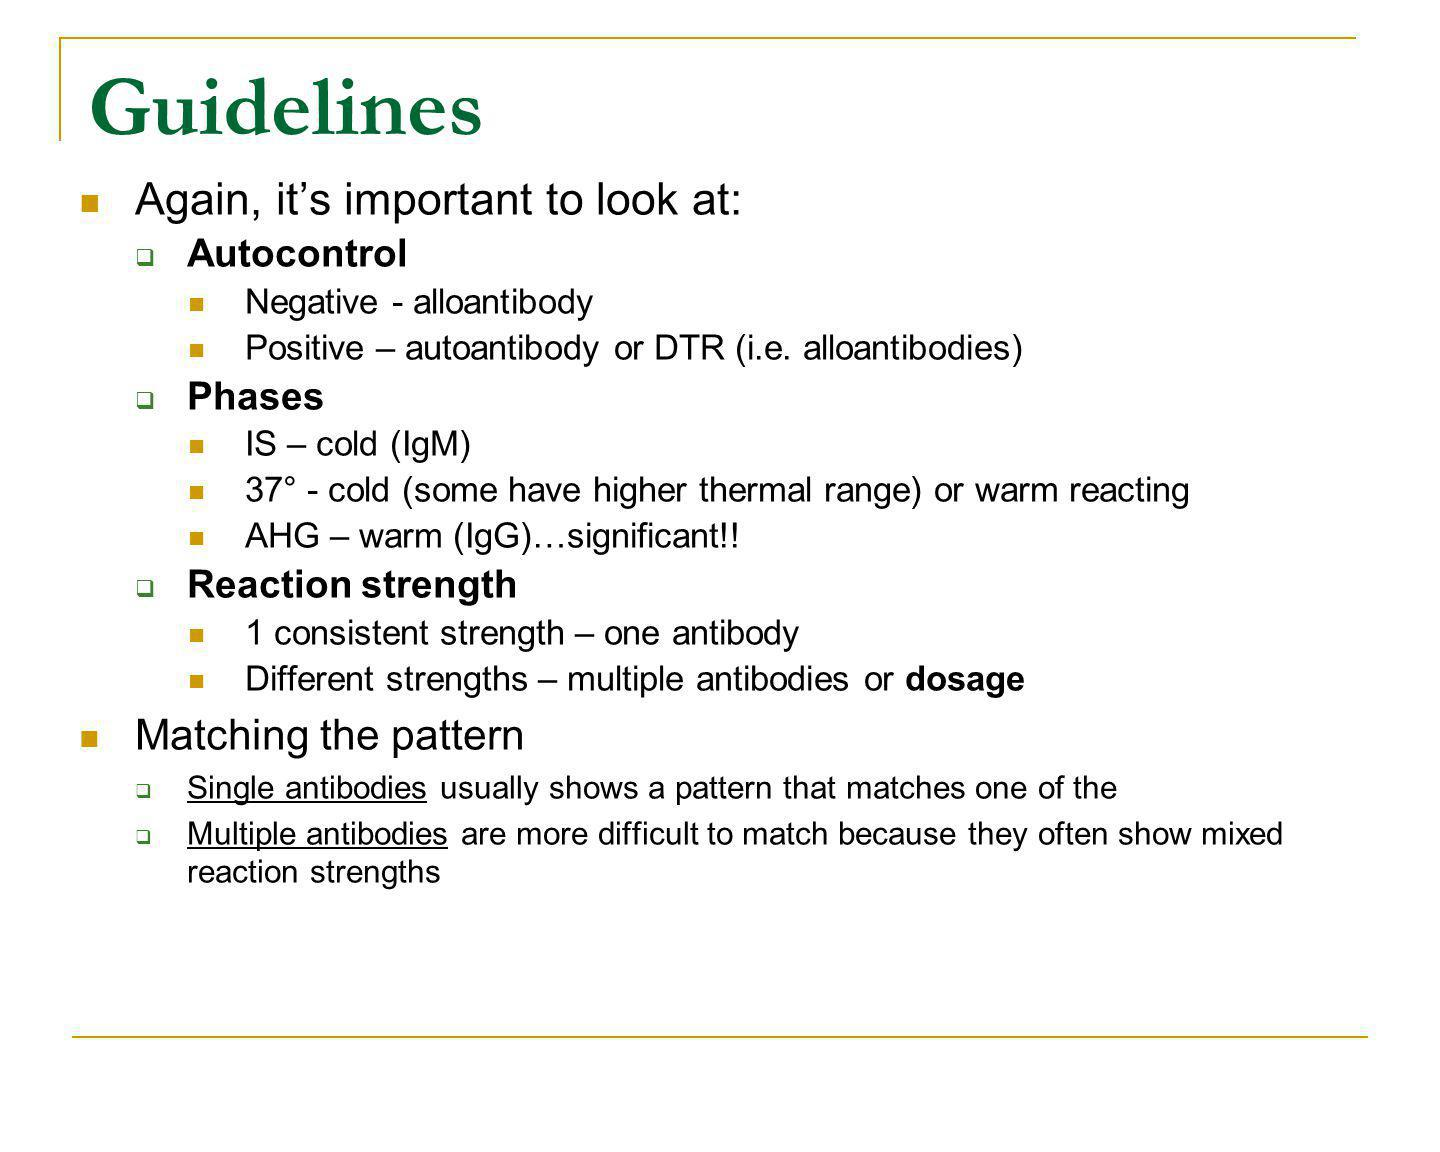 Guidelines Again, it's important to look at: Matching the pattern